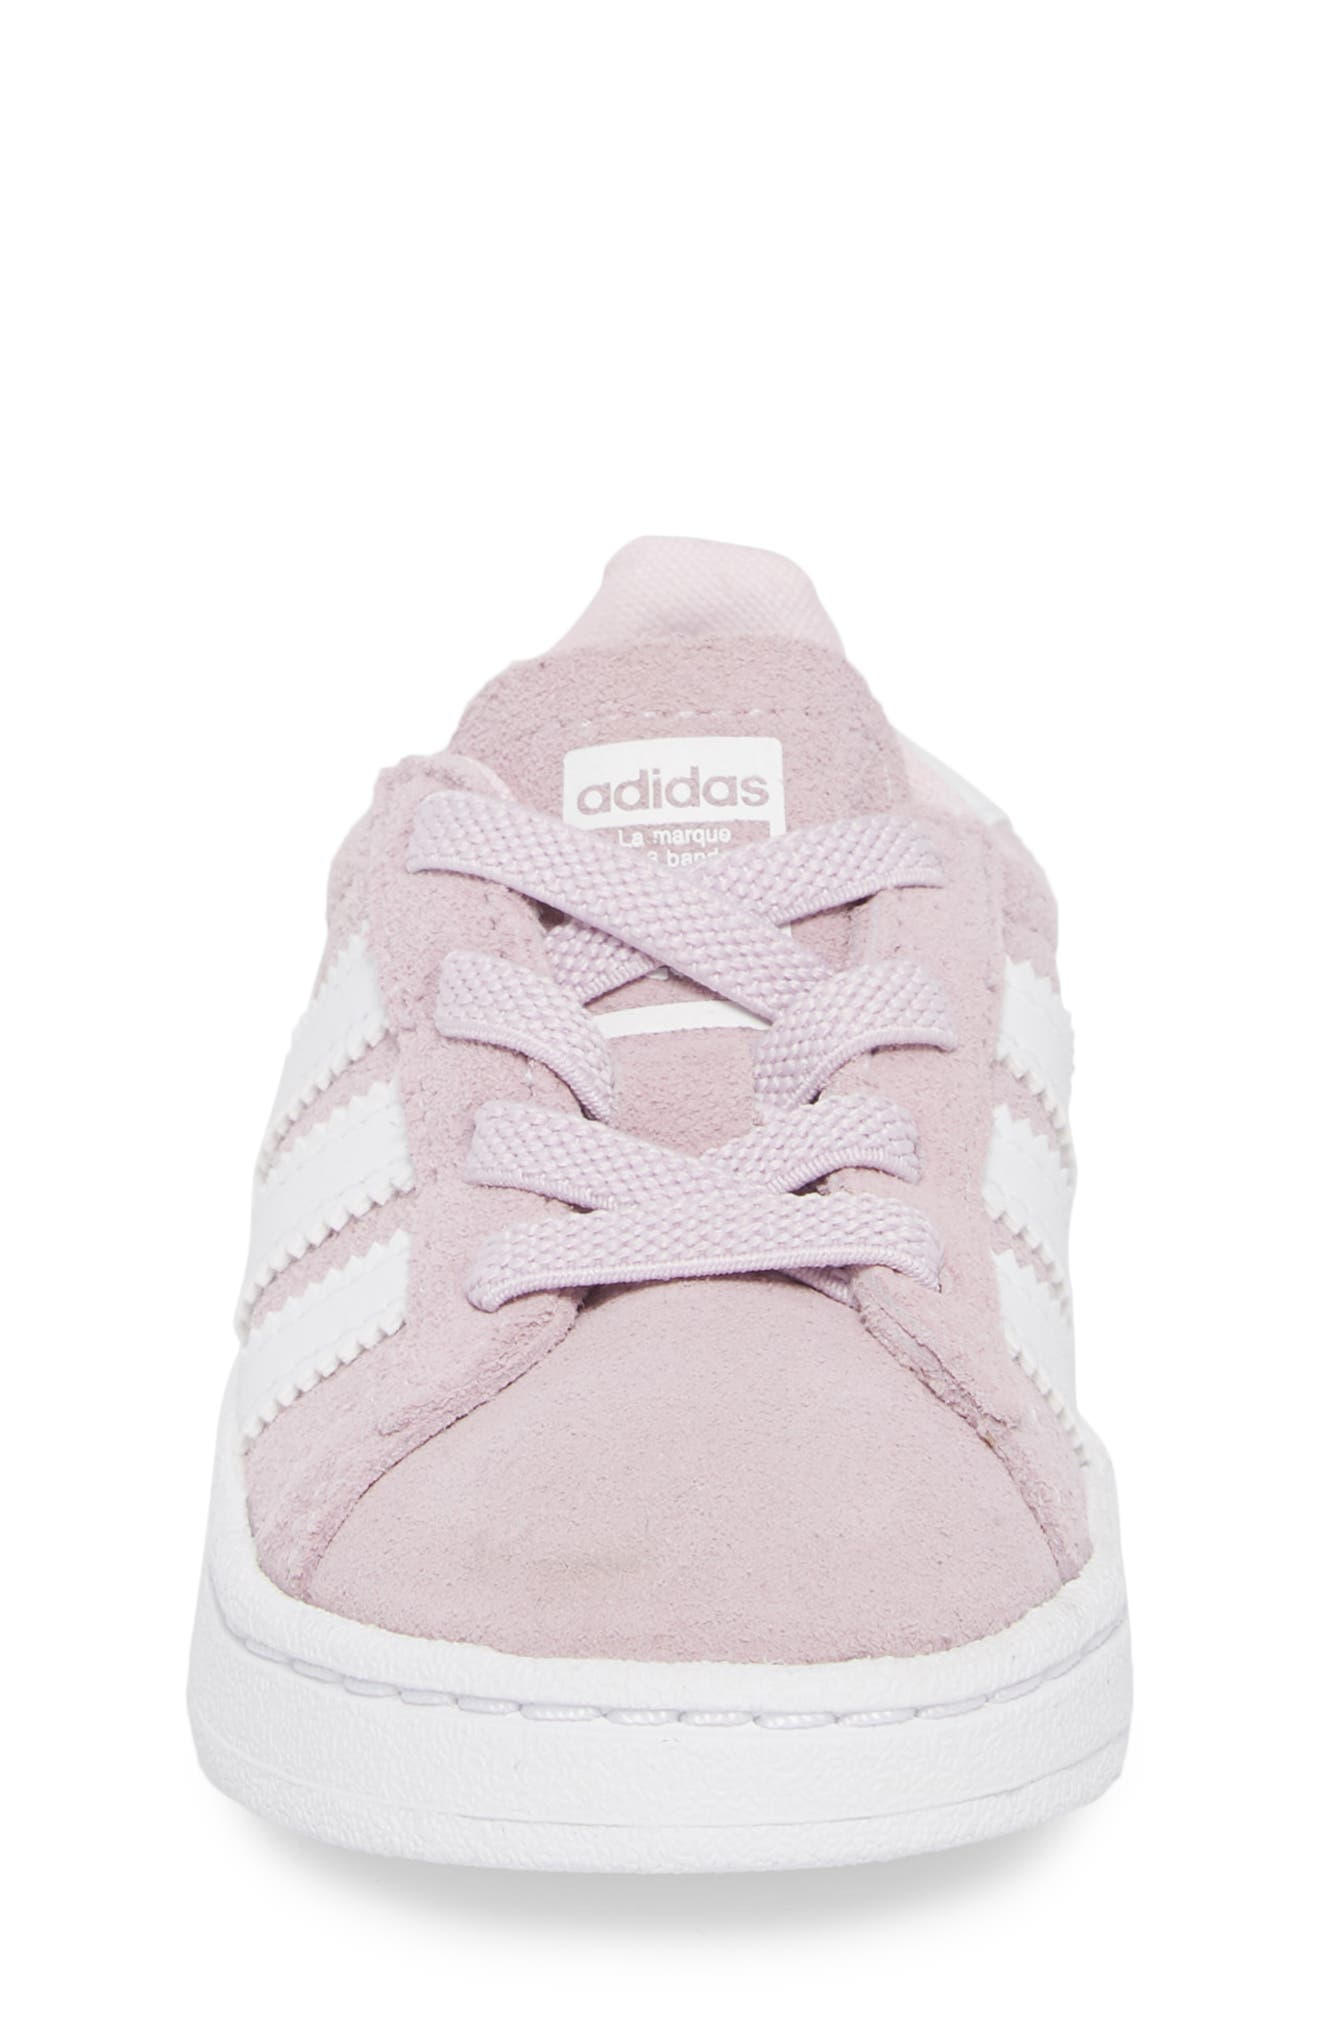 Campus J Sneaker,                             Alternate thumbnail 4, color,                             Aero Pink / White / White